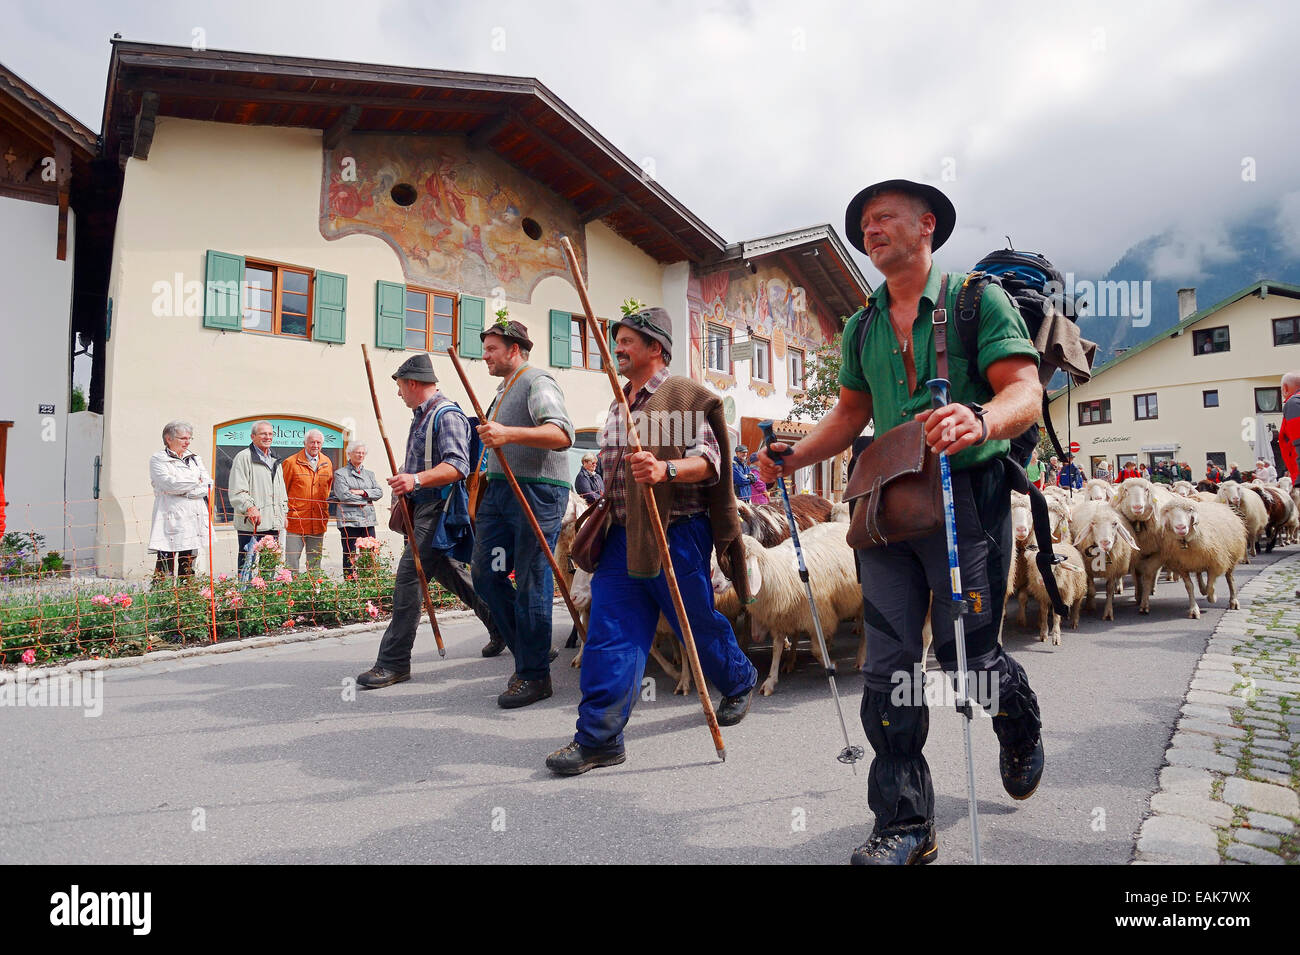 Shepherds driving a flock of domestic sheep during the Almabtrieb drive from the mountain pasture, Mittenwald, Werdenfelser - Stock Image